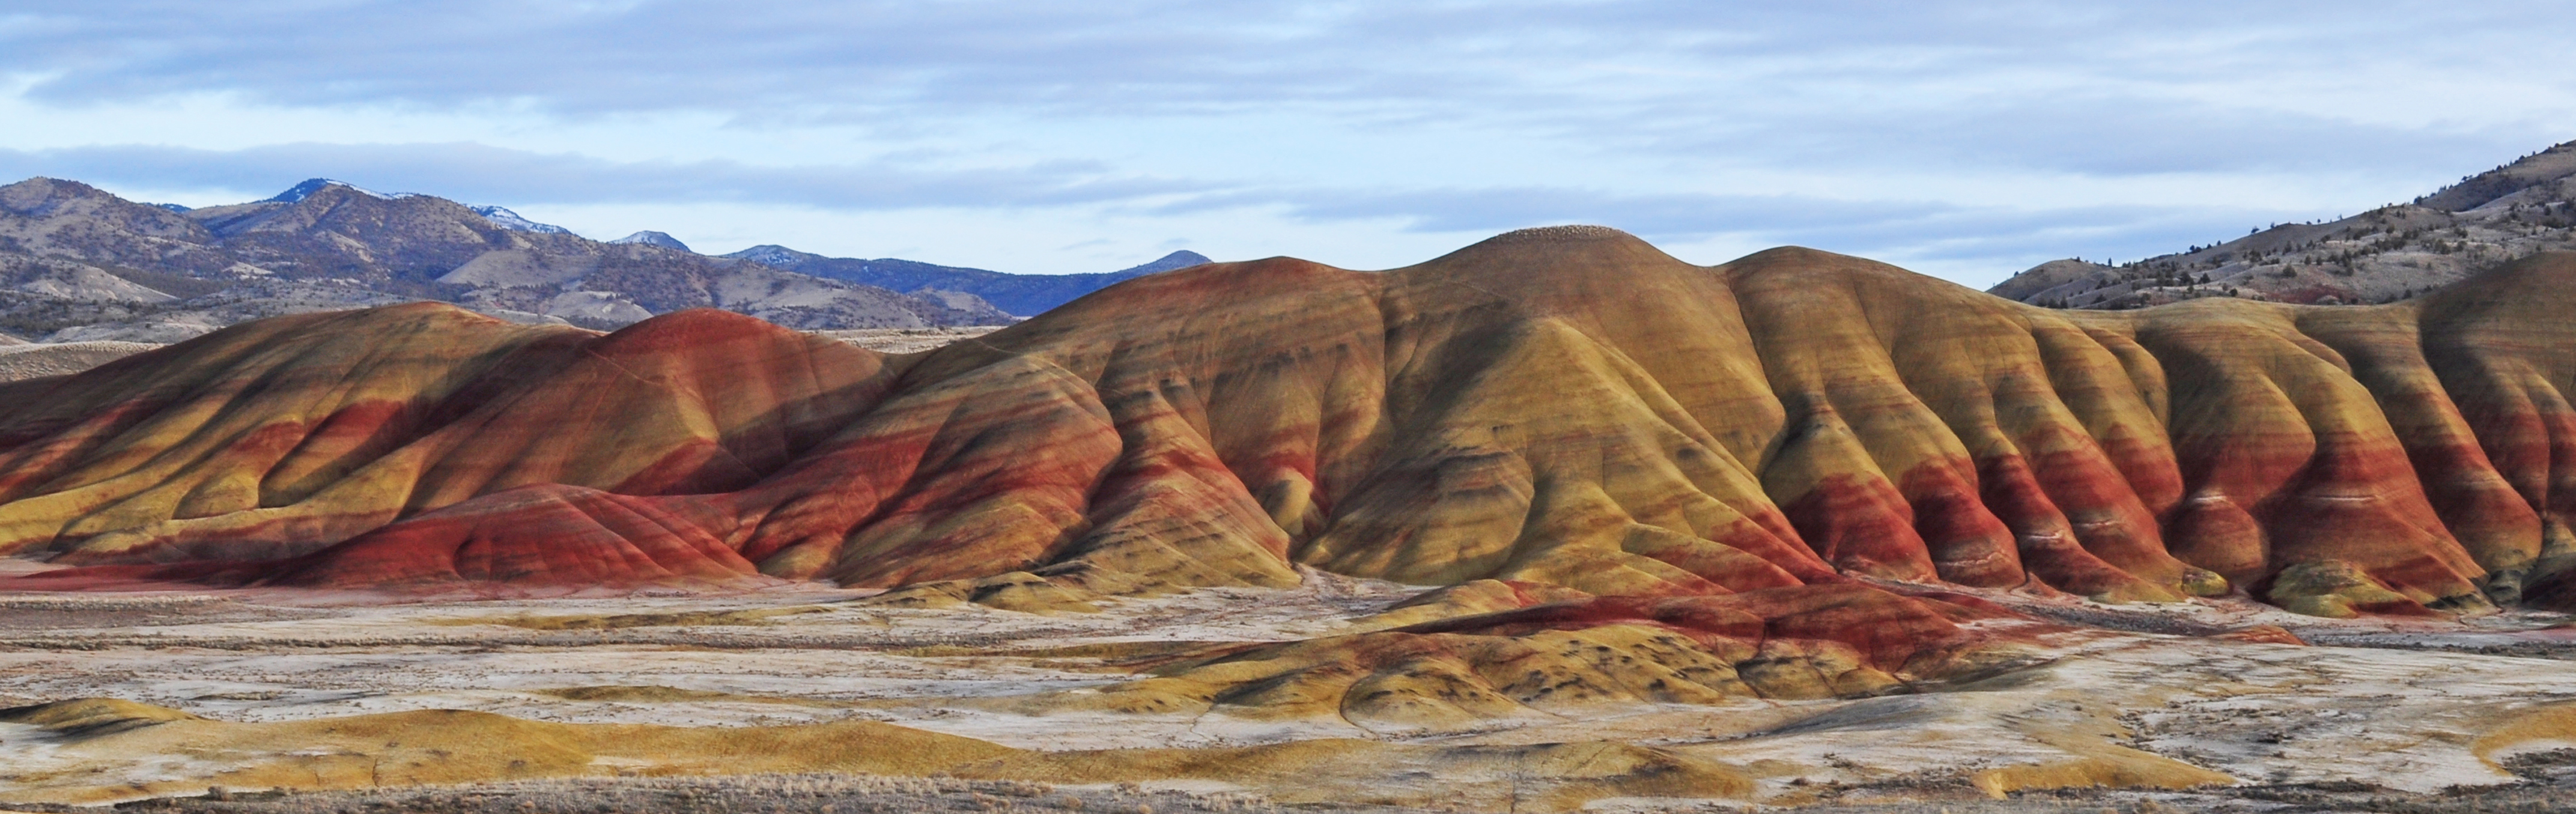 file john day fossil beds nm painted hills unit jpg  file john day fossil beds nm painted hills unit jpg